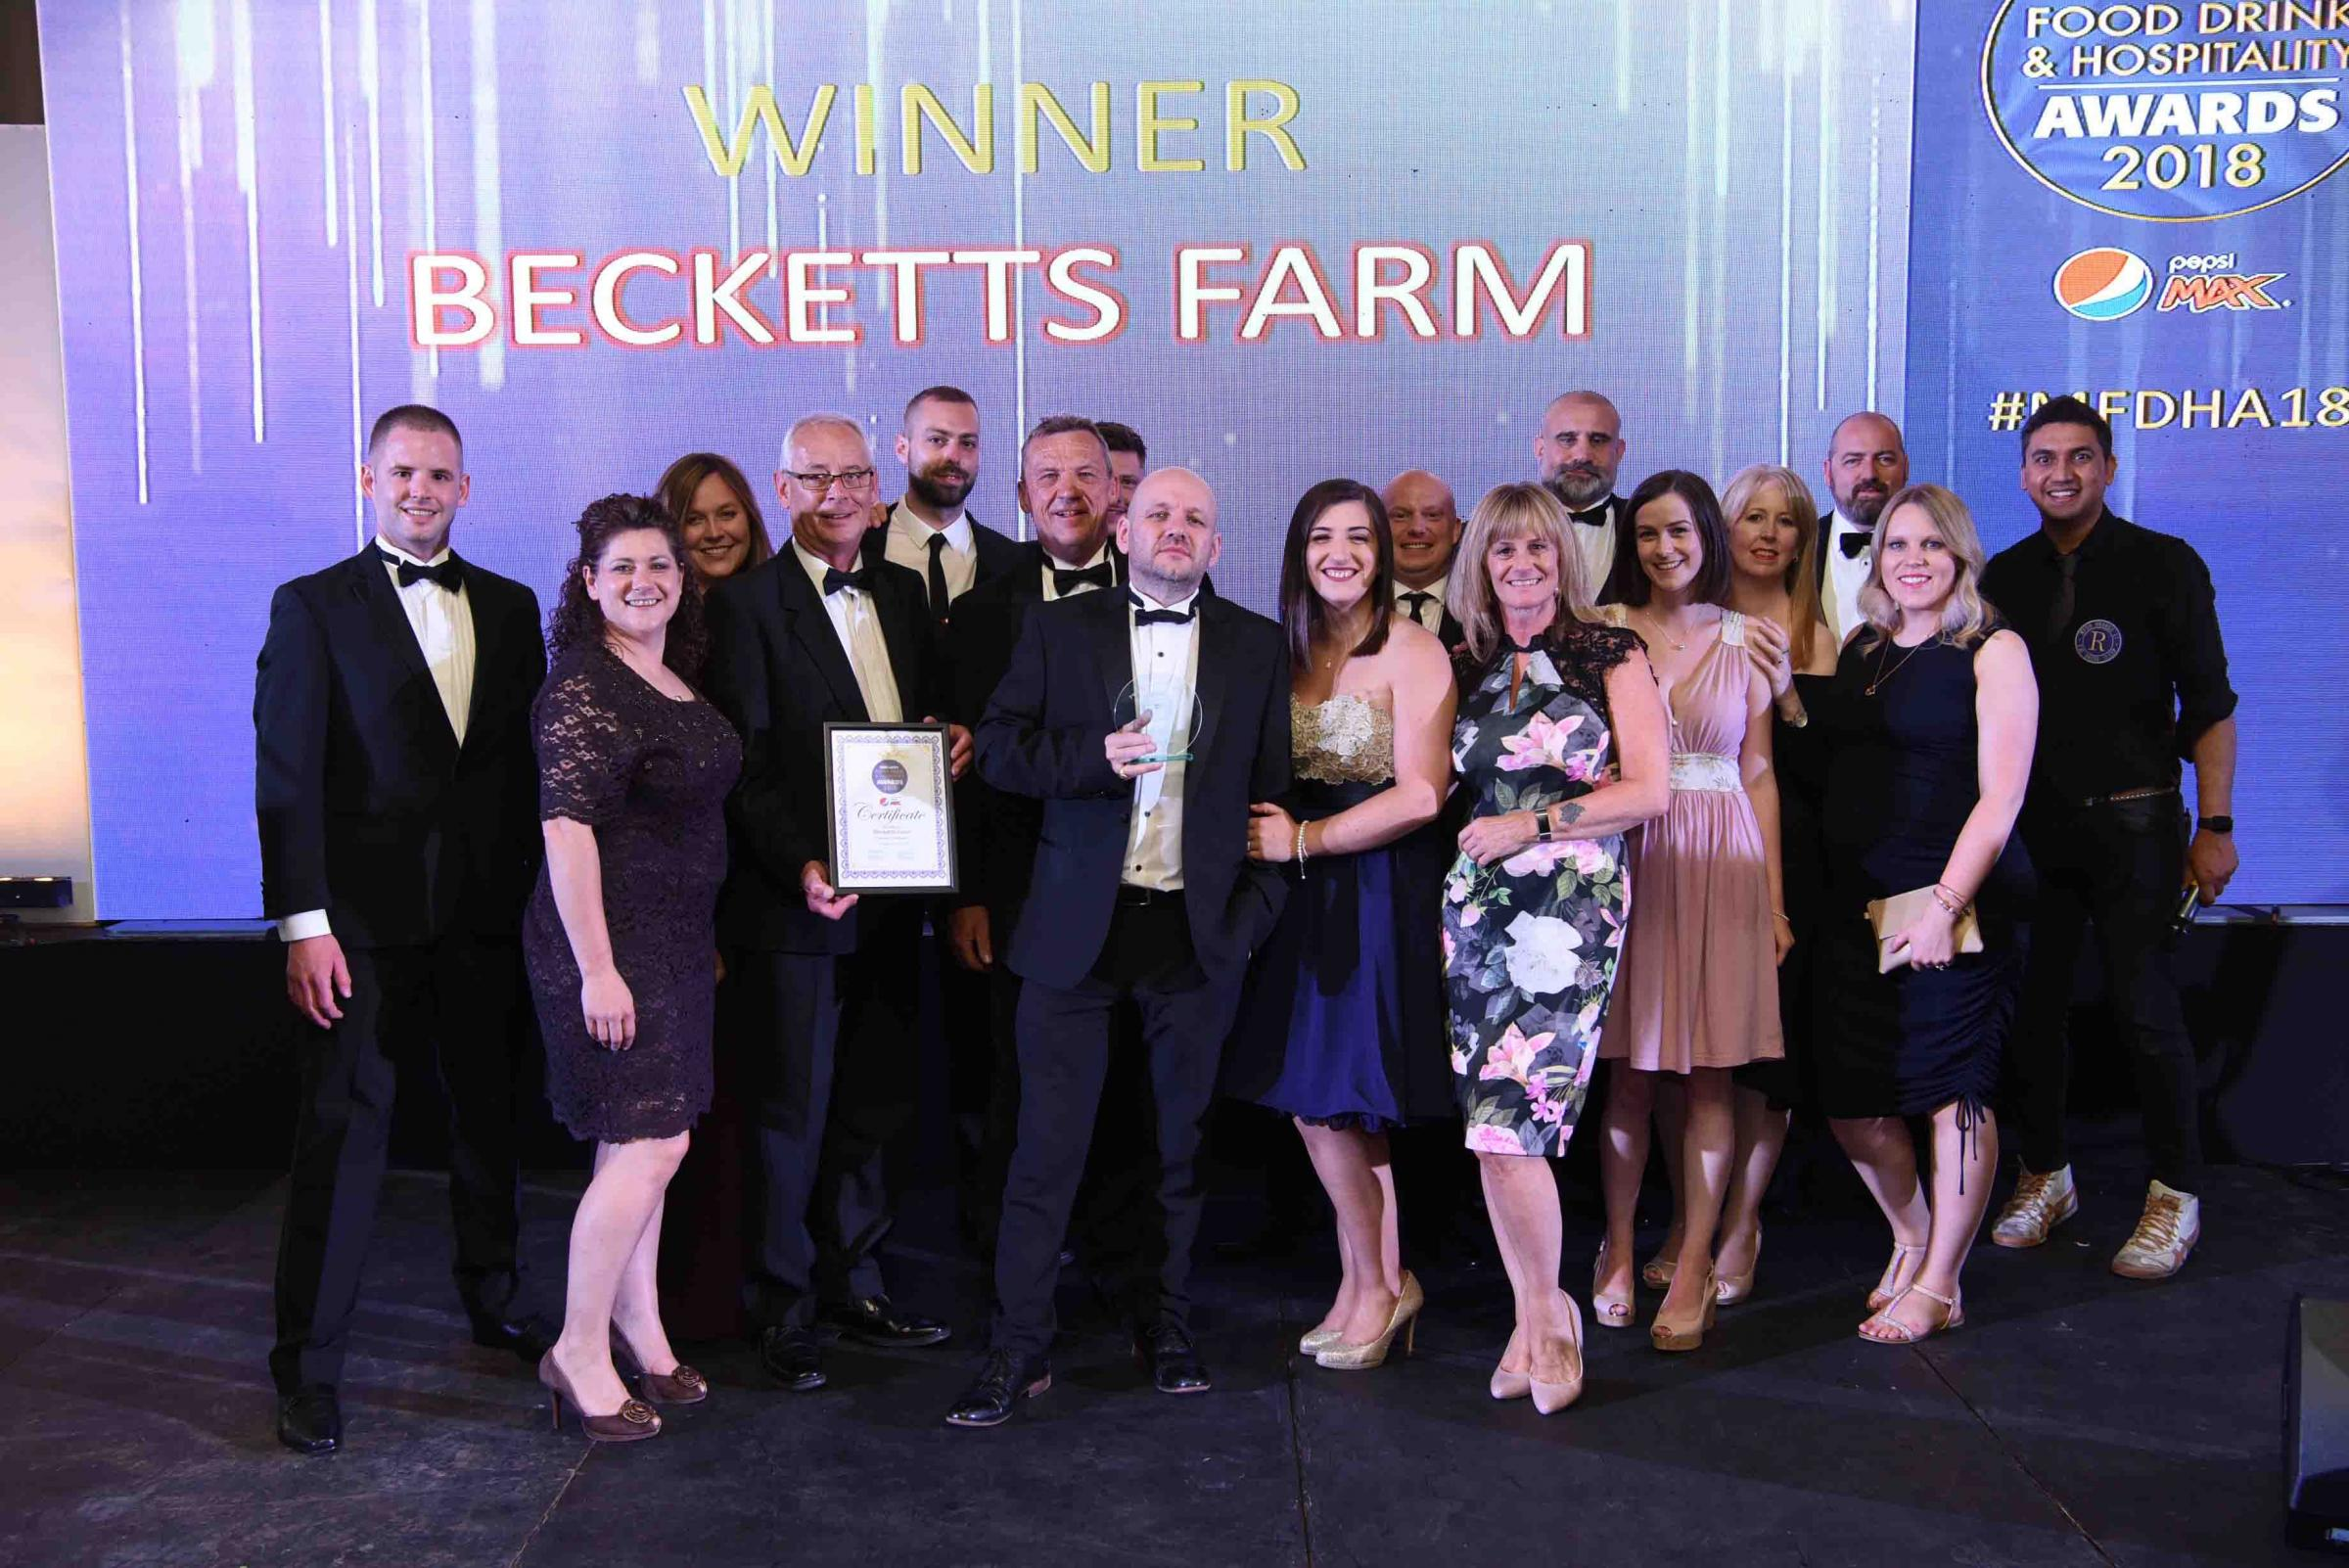 Staff from Becketts Farm at the ceremony